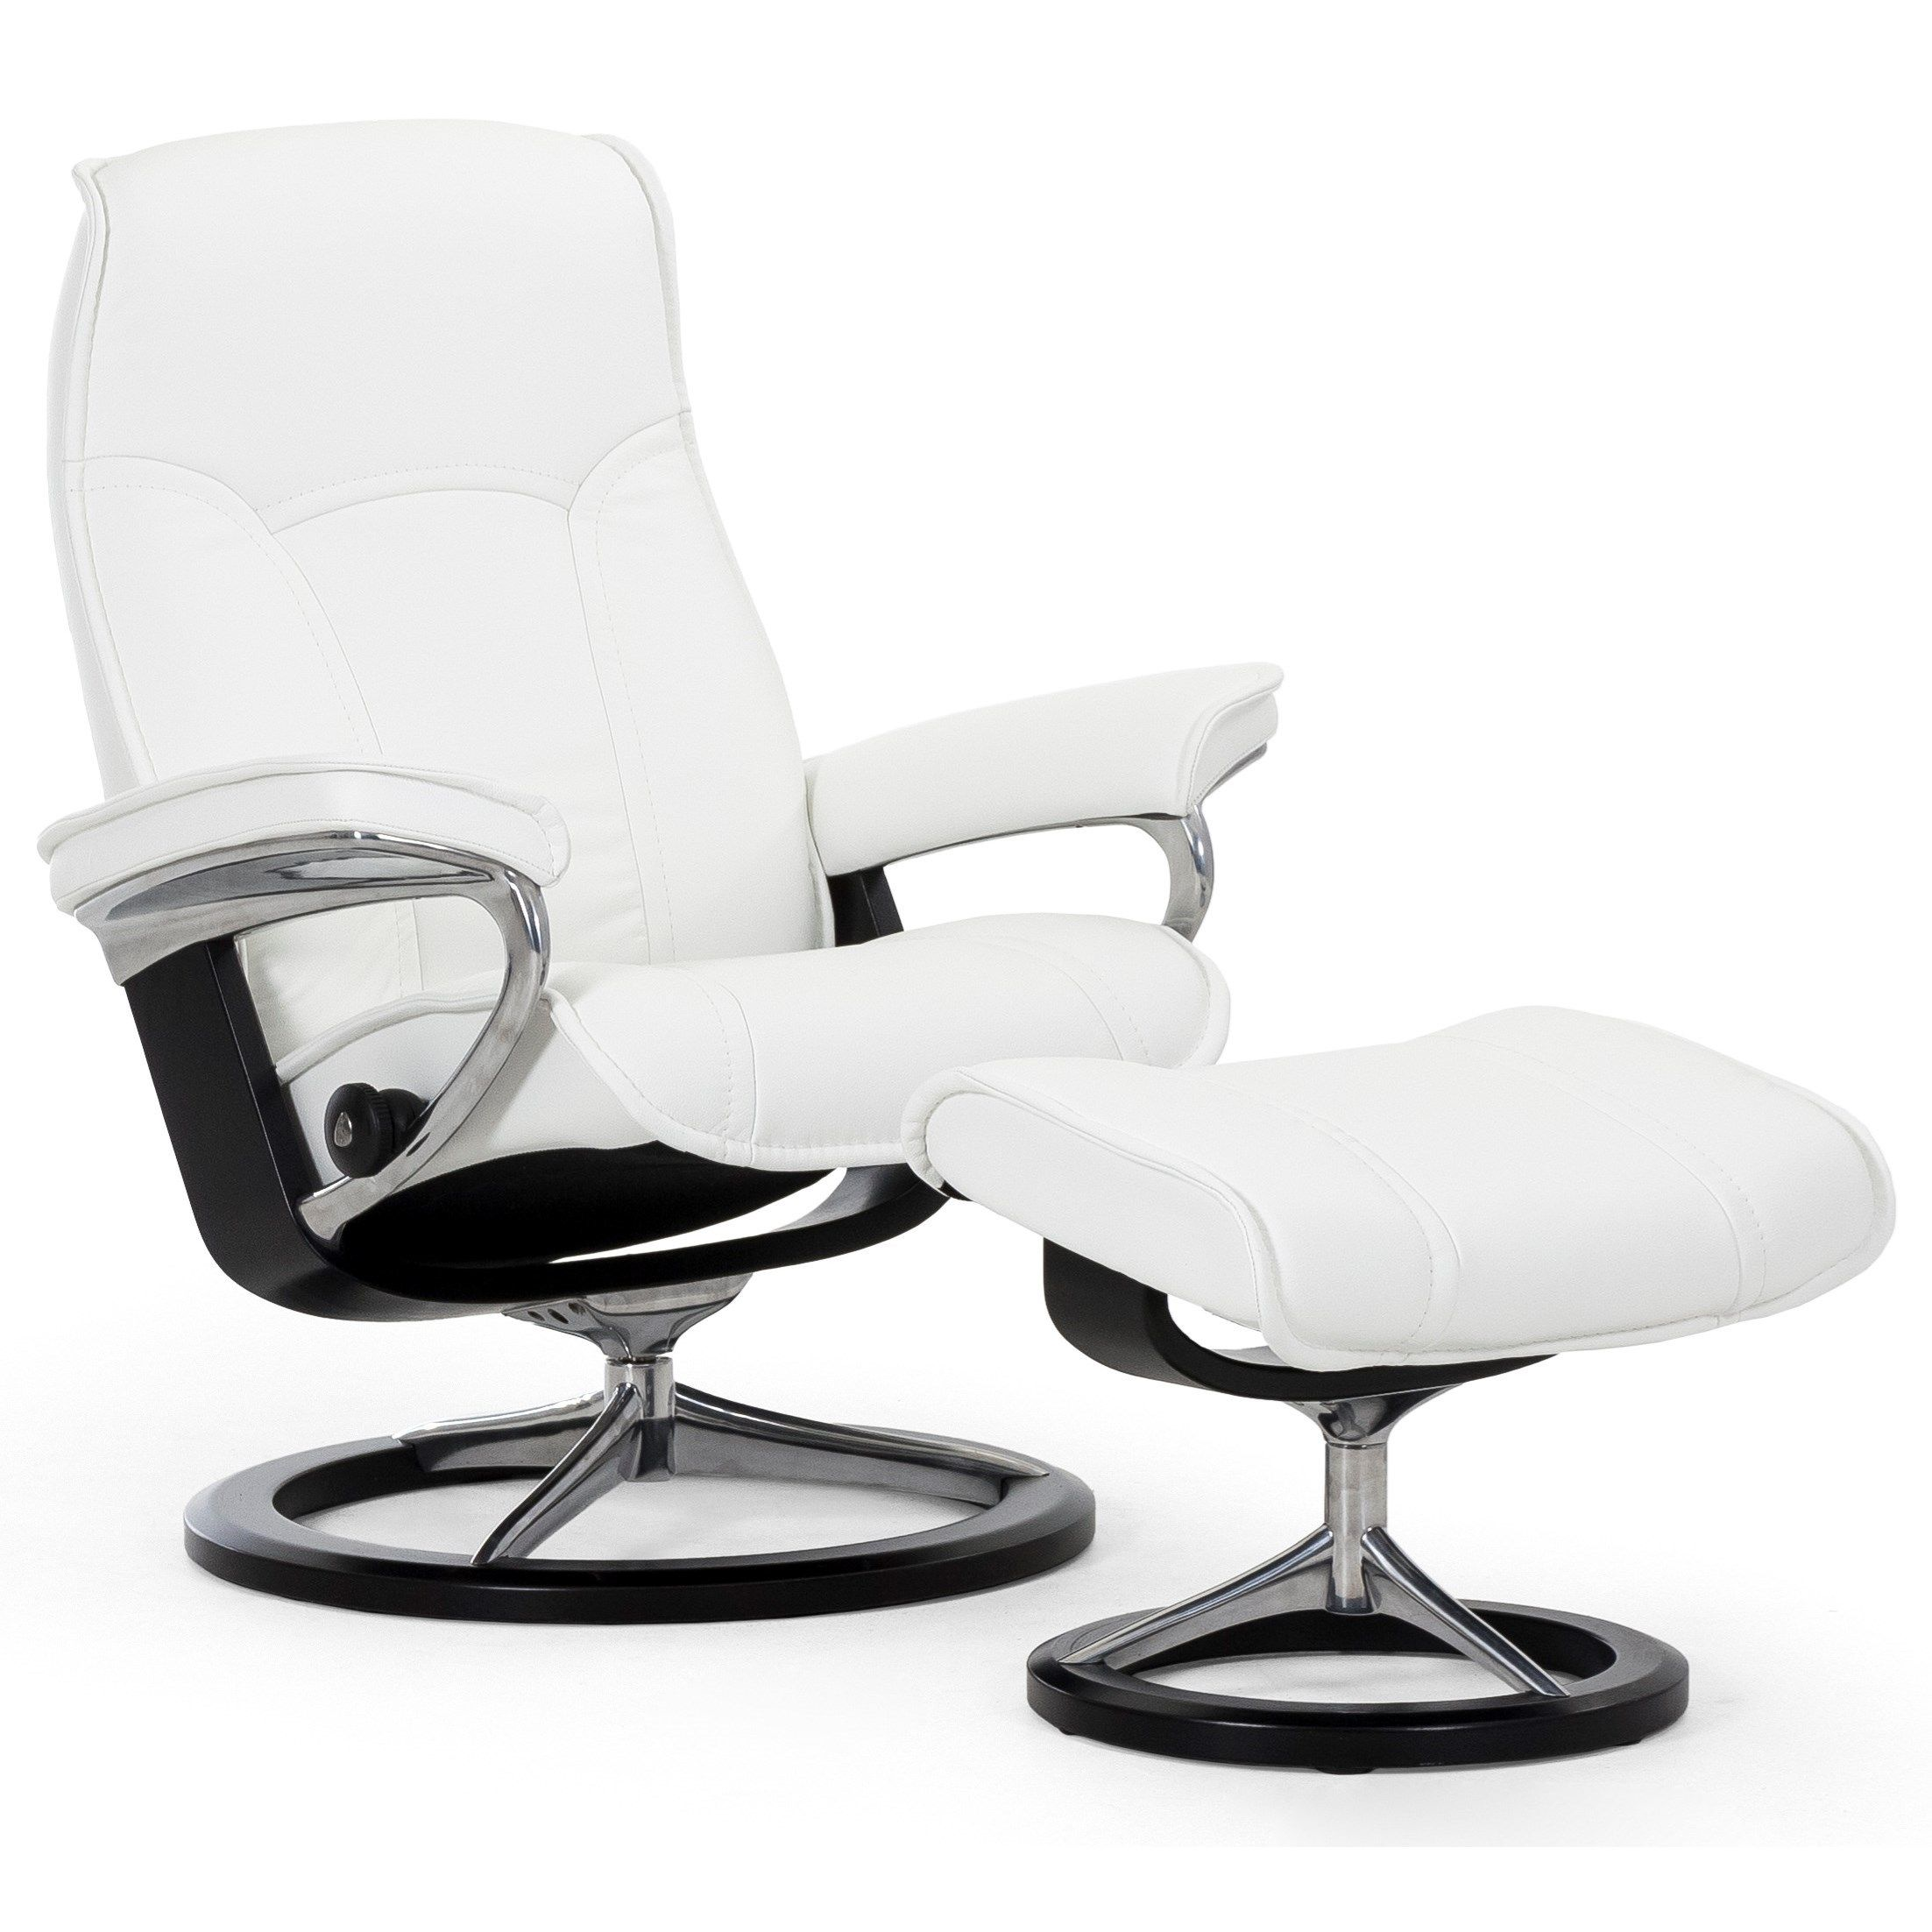 Small Signature Chair by Stressless by Ekornes (With